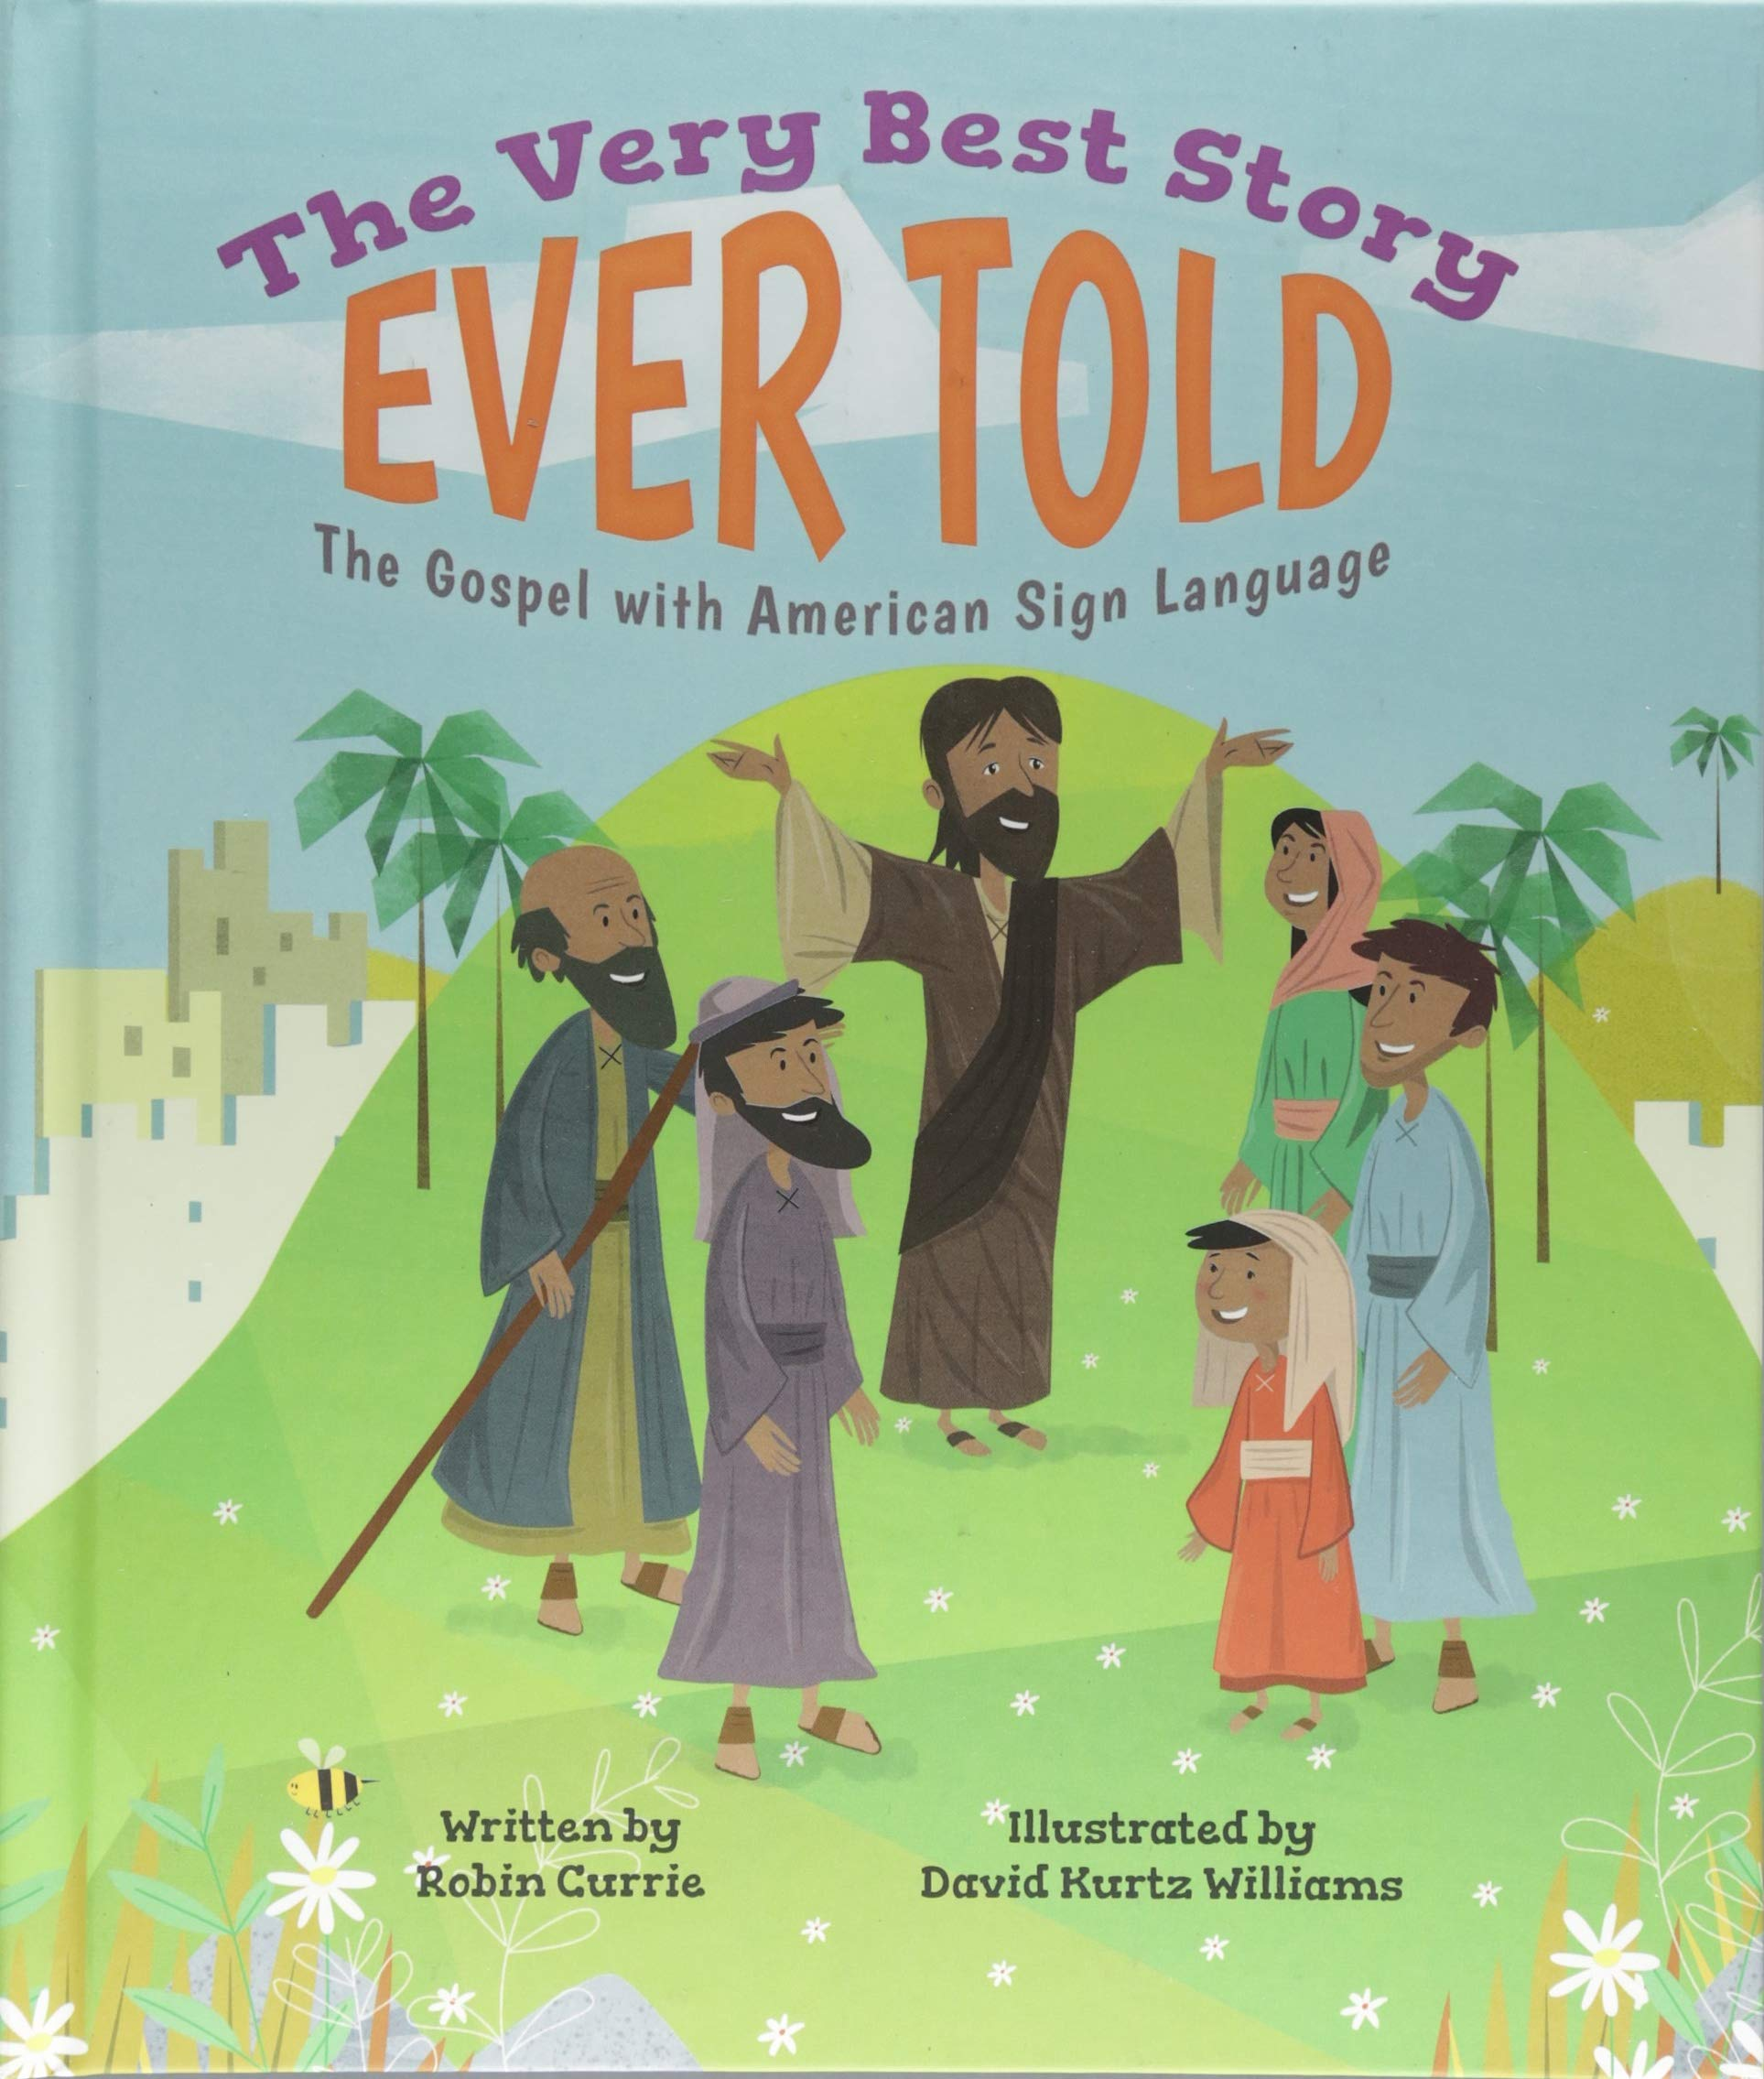 The Very Best Story Ever Told: The Gospel with American Sign Language by Beaming Books